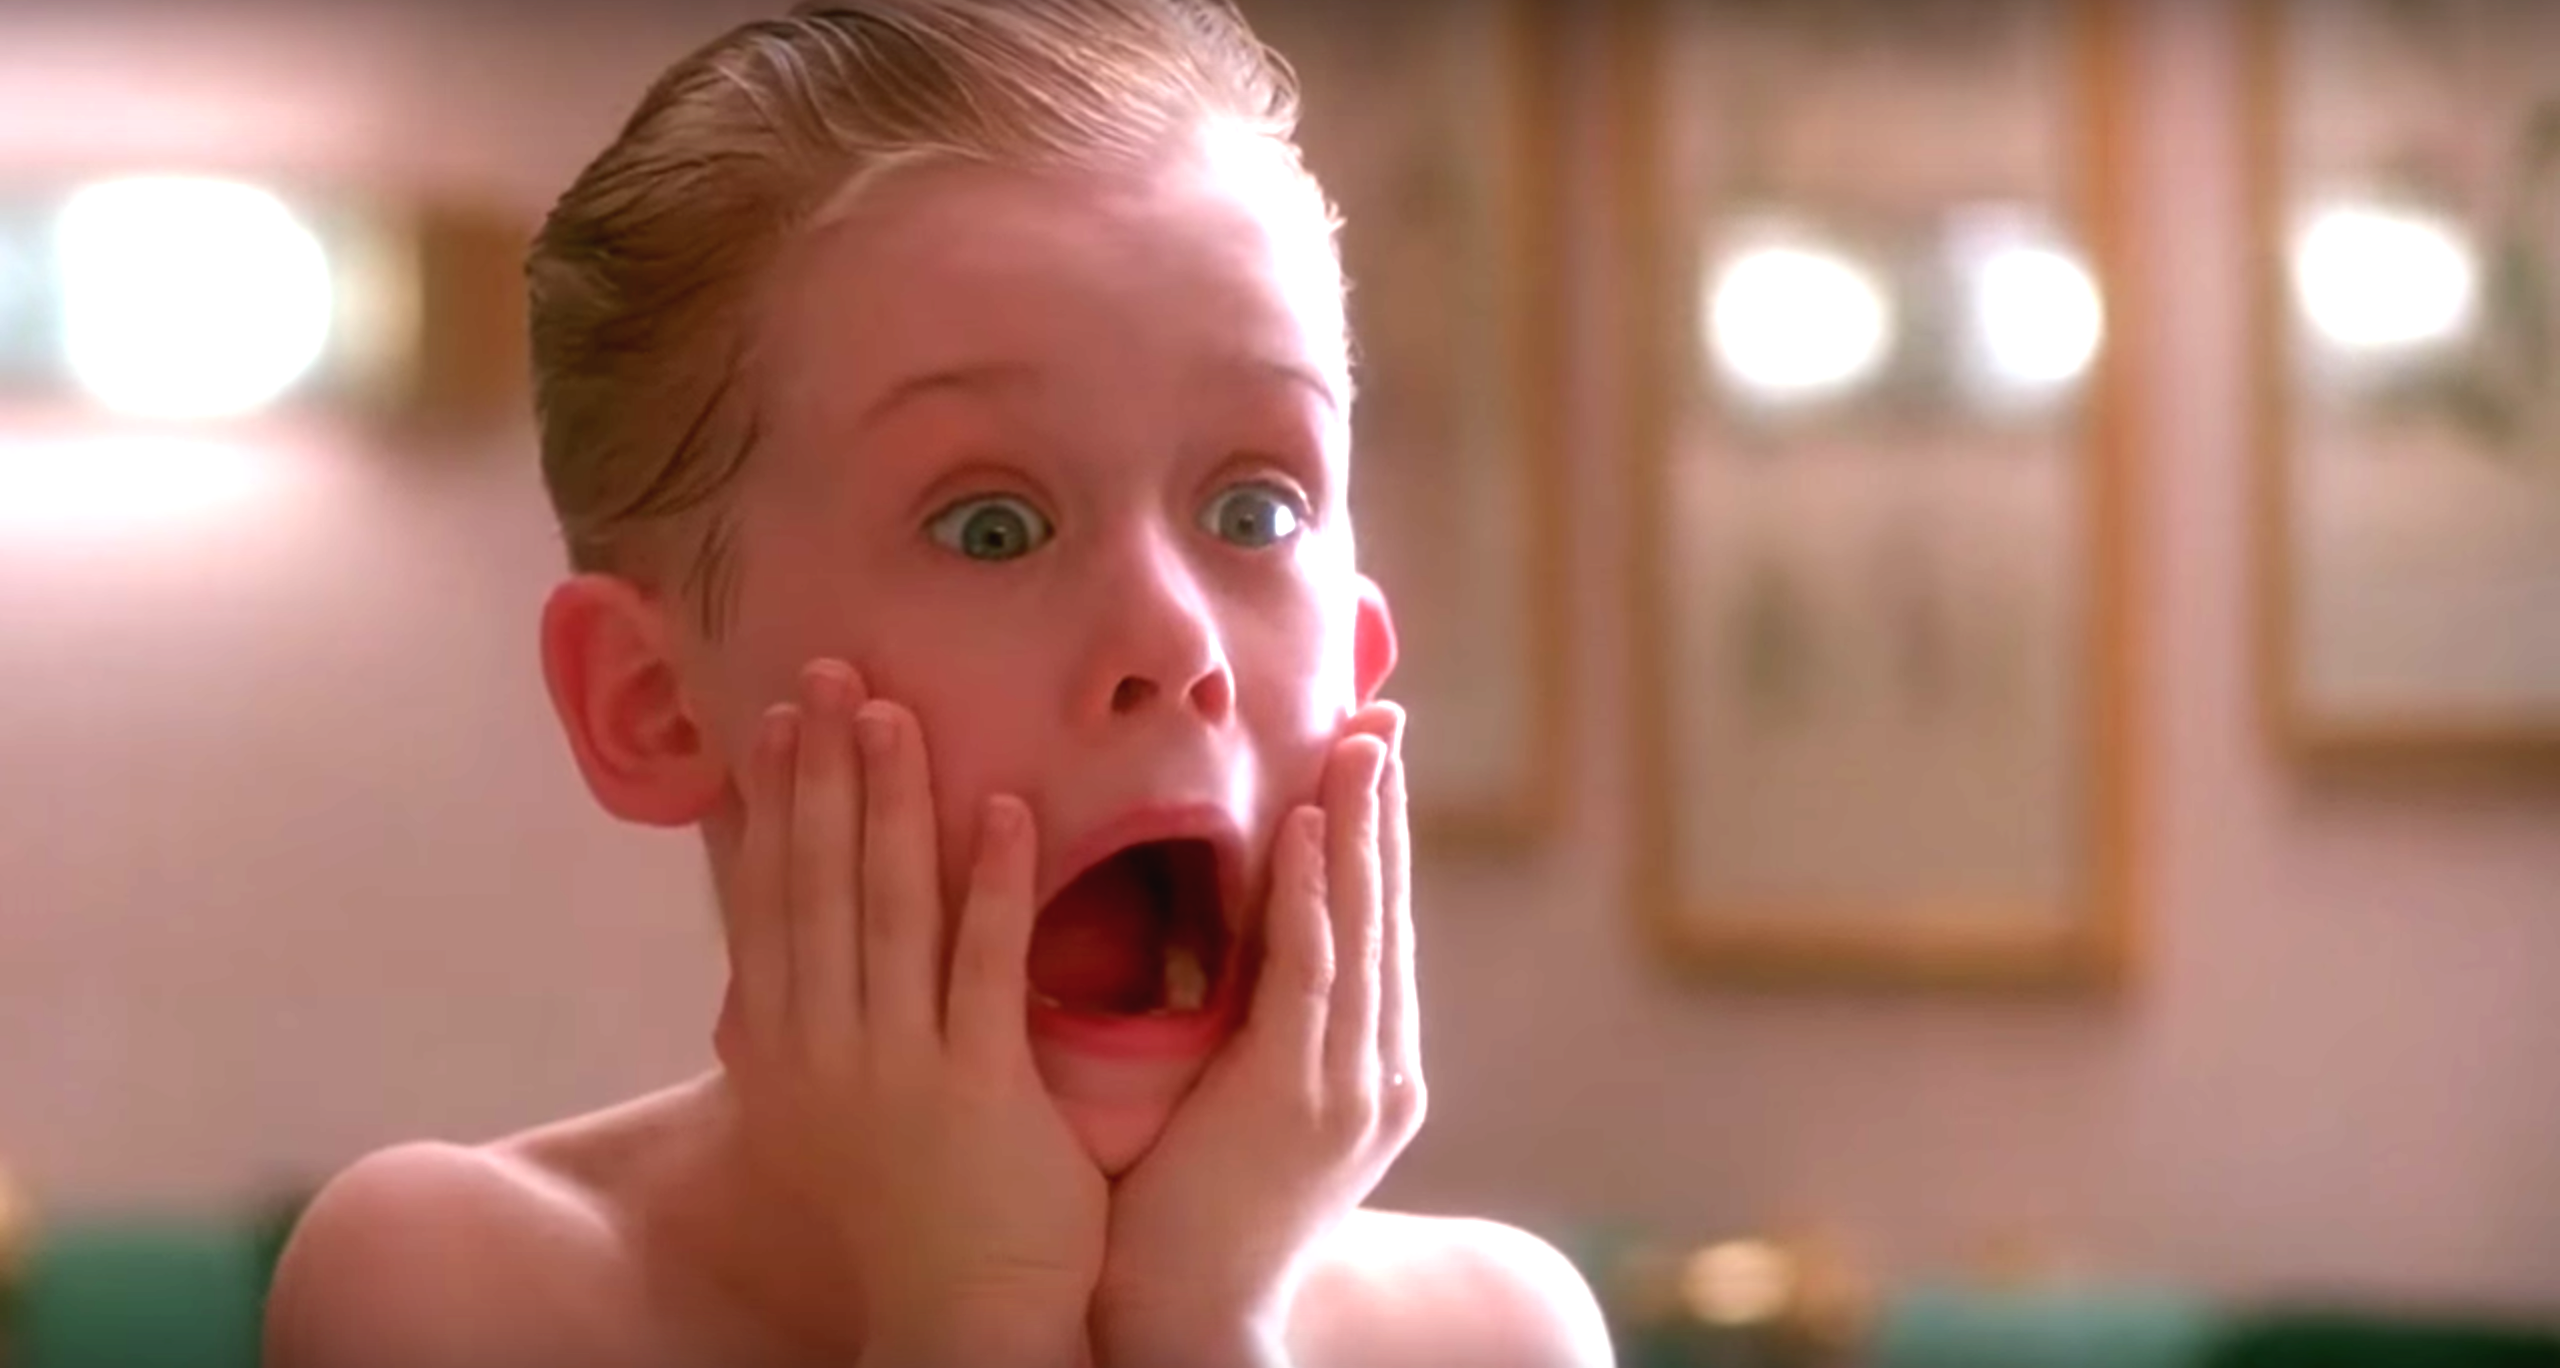 Home Alone's Macaulay Culkin responds to reboot in the best way